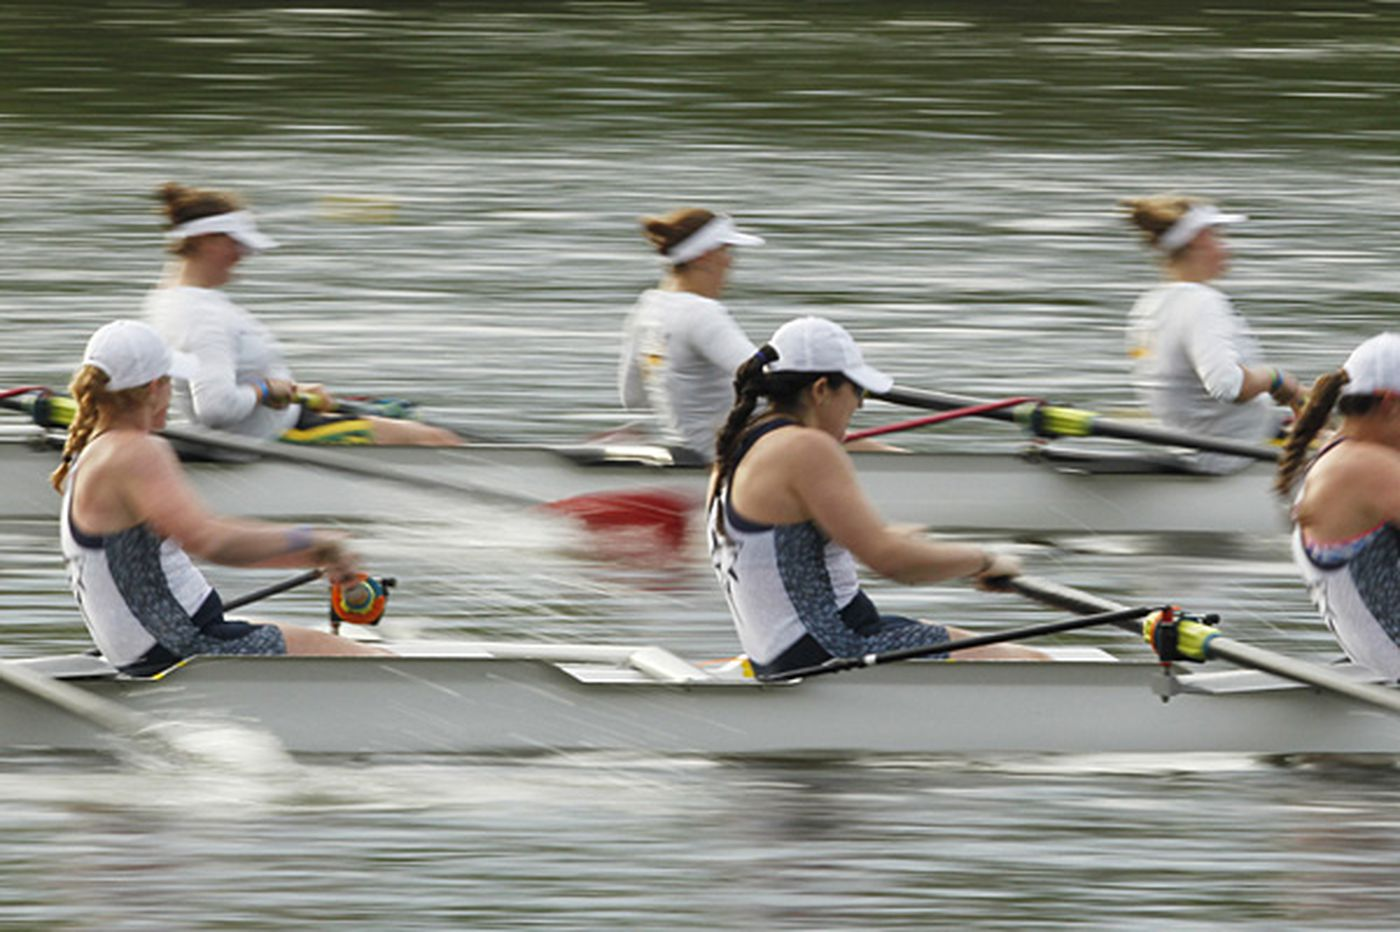 What's in a name? Just ask these Dad Vail rowers